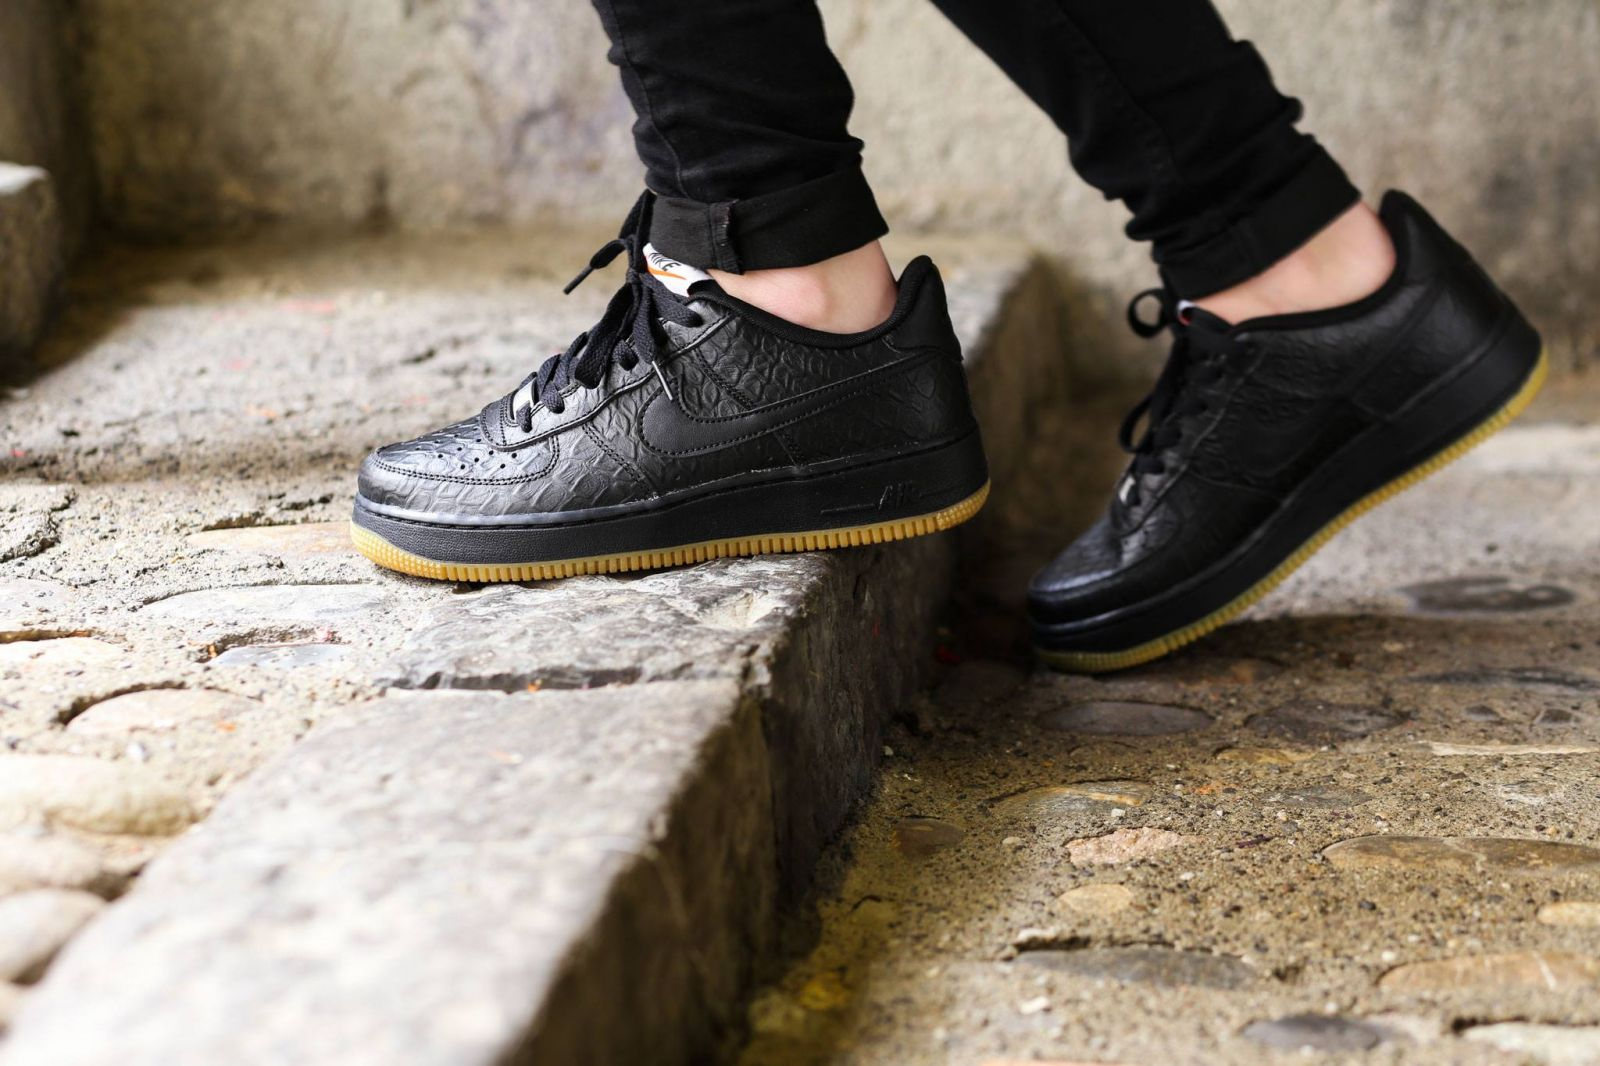 online retailer fa52b 17b8a The black sheep from Nike s new Air Force 1 Low